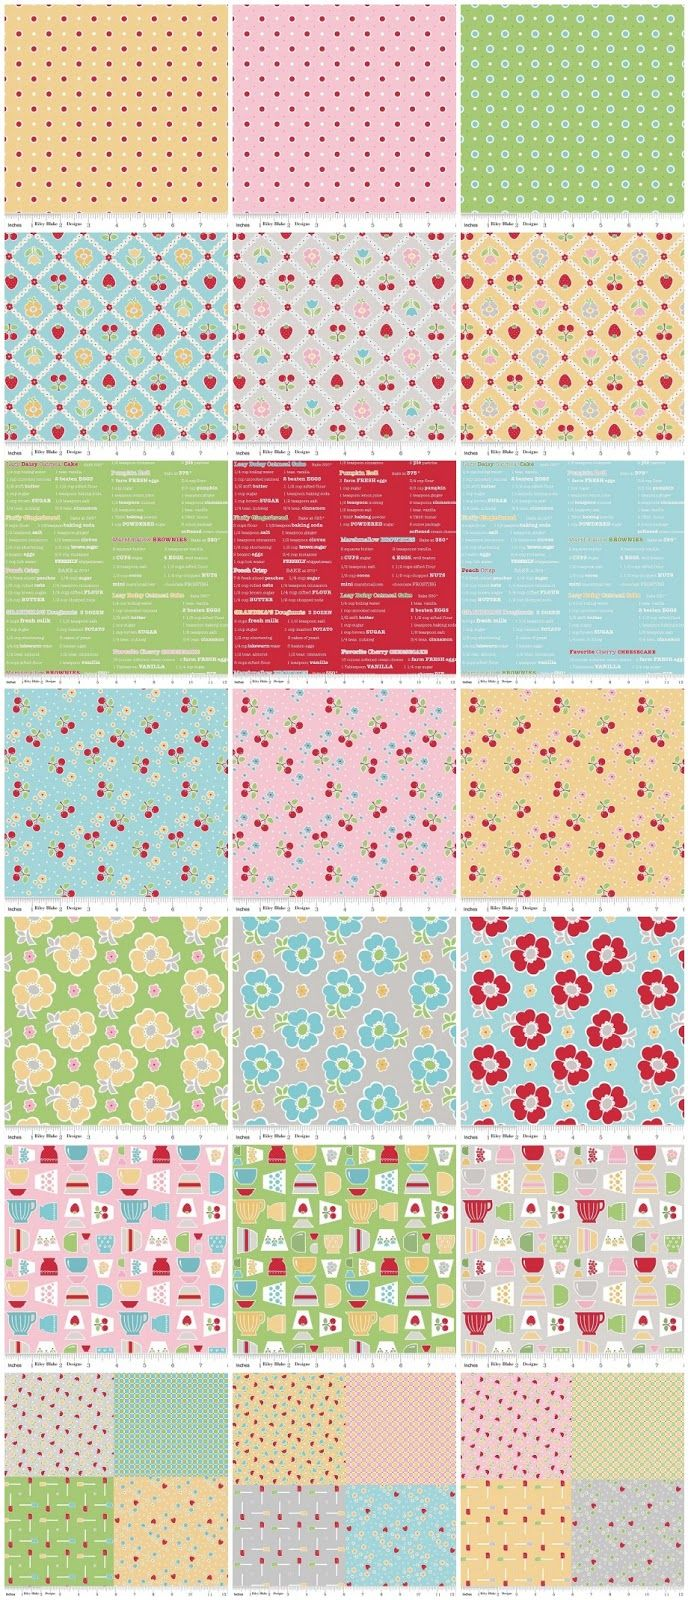 42 best Bake Sale Fabric... images on Pinterest | Bake sale ... : quilt fabric for sale - Adamdwight.com